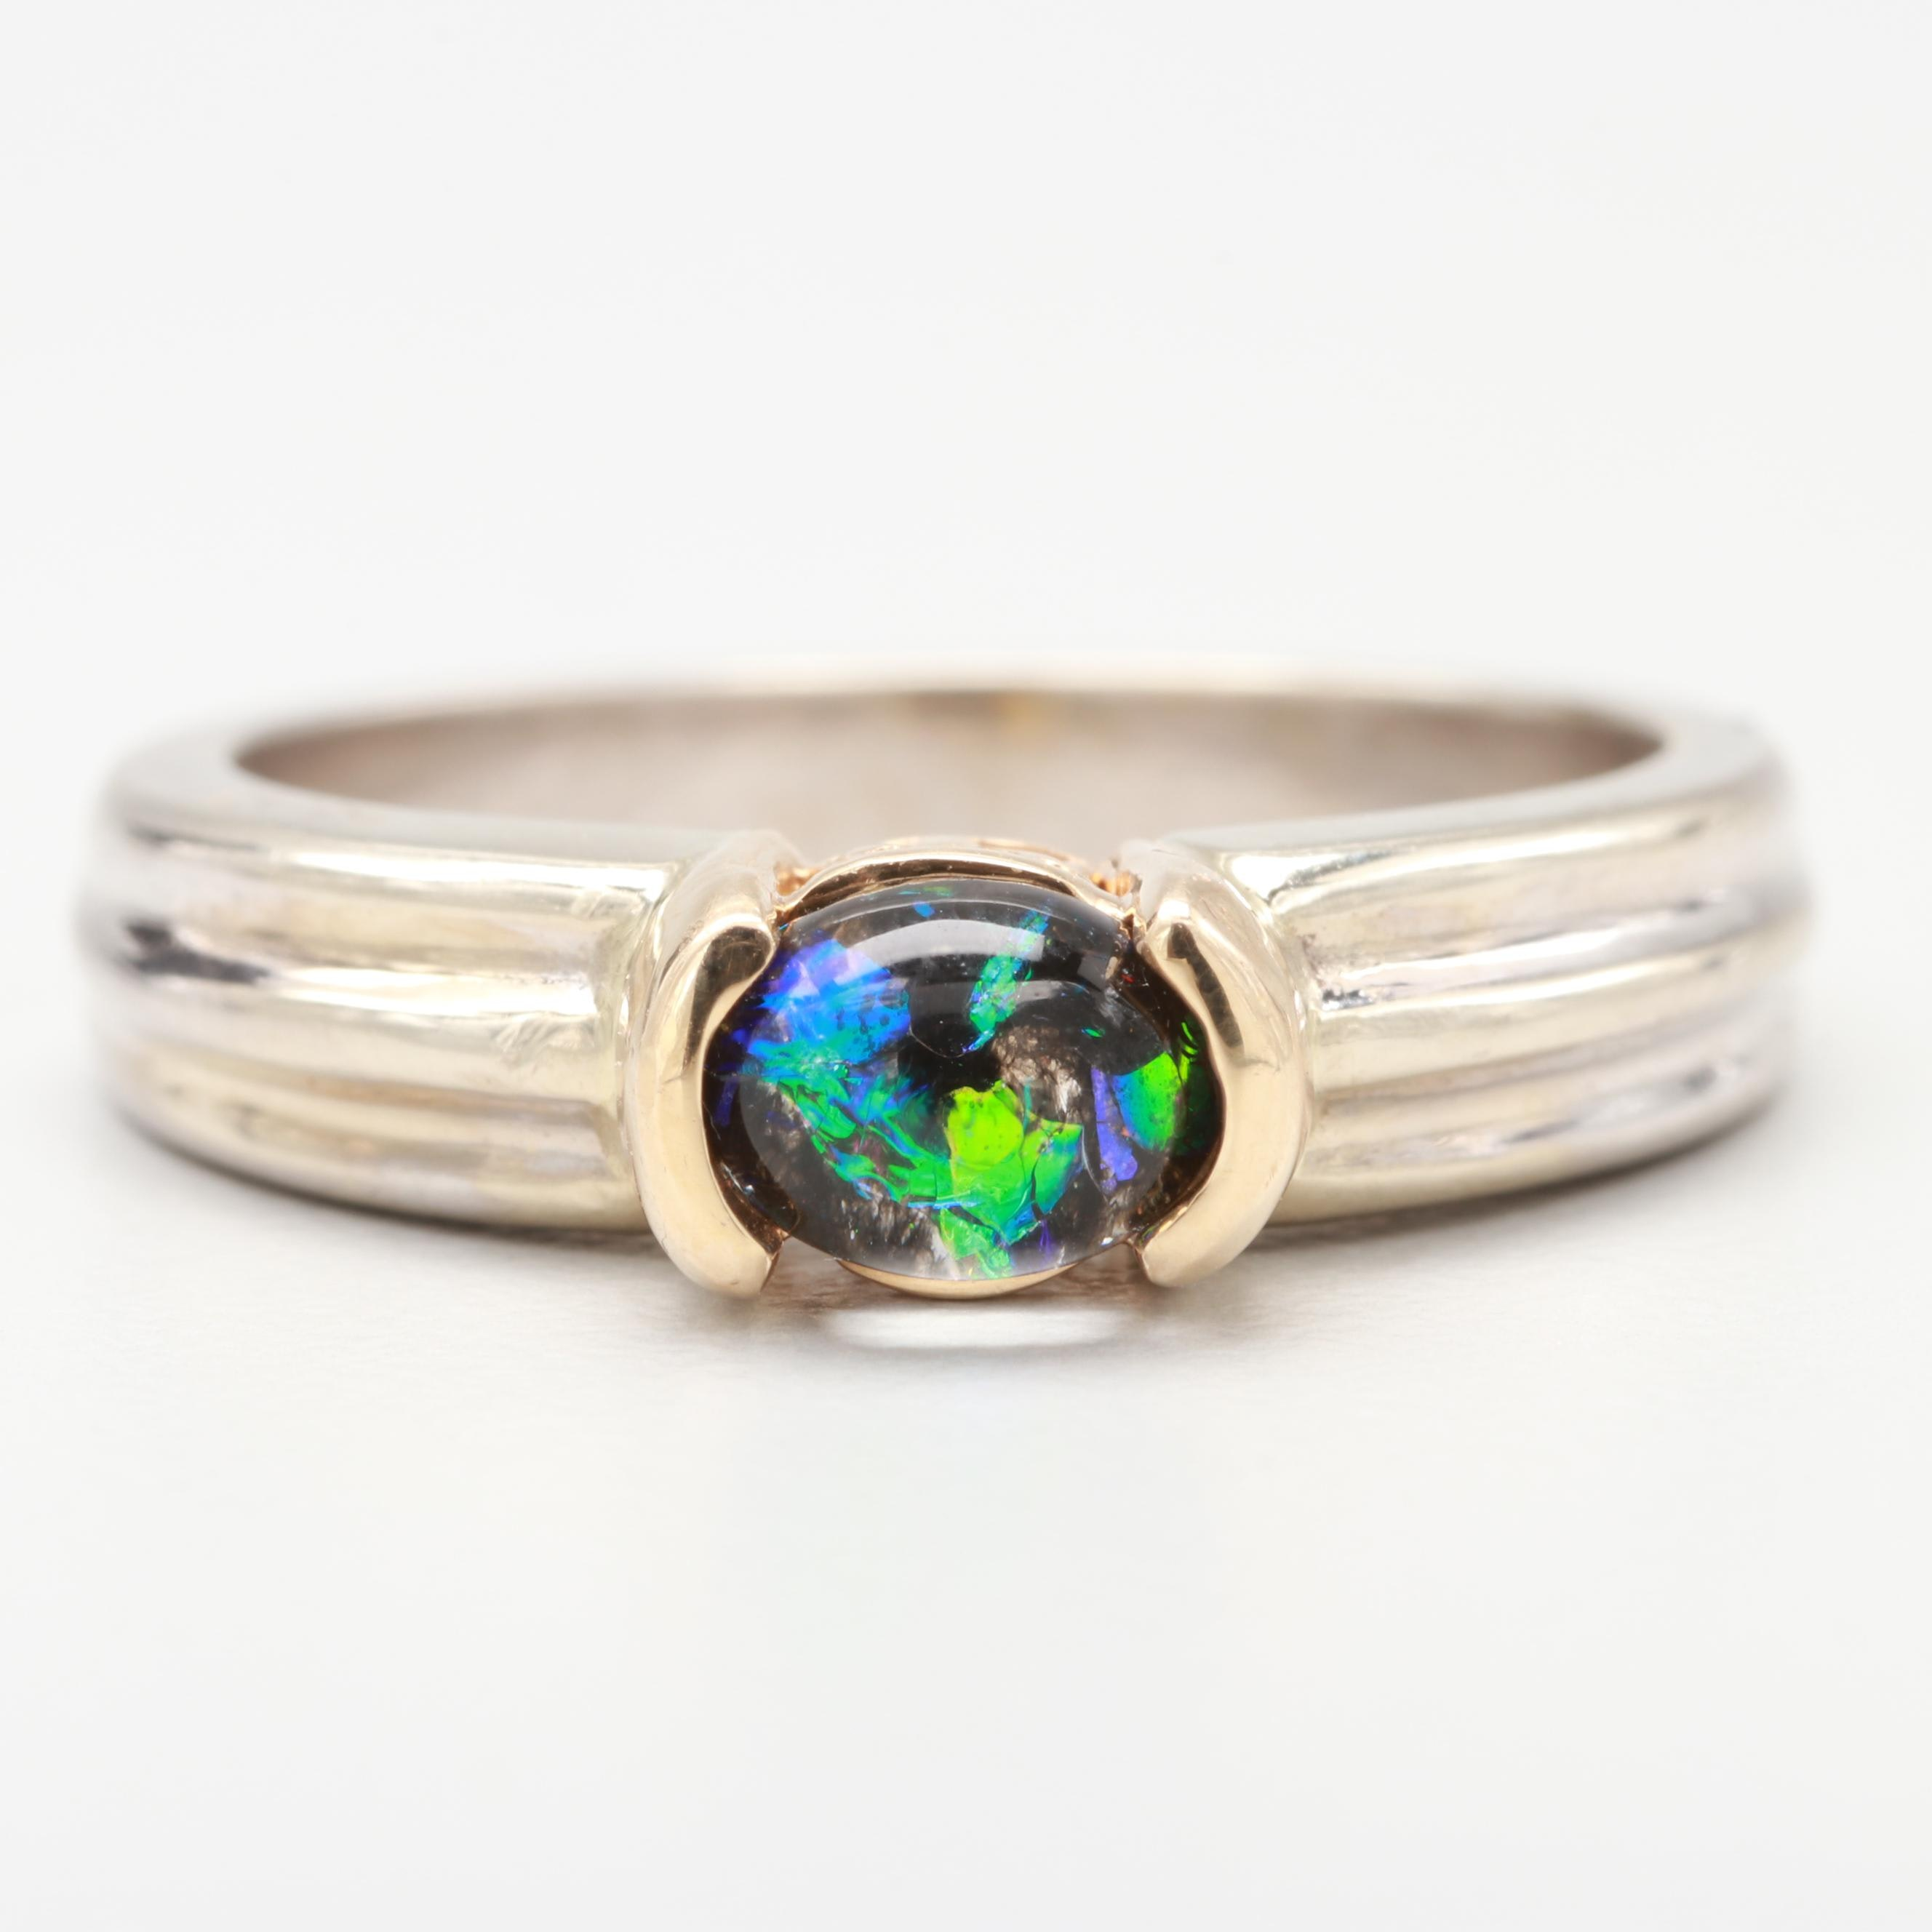 14K Yellow and White Gold Imitation Opal Ring